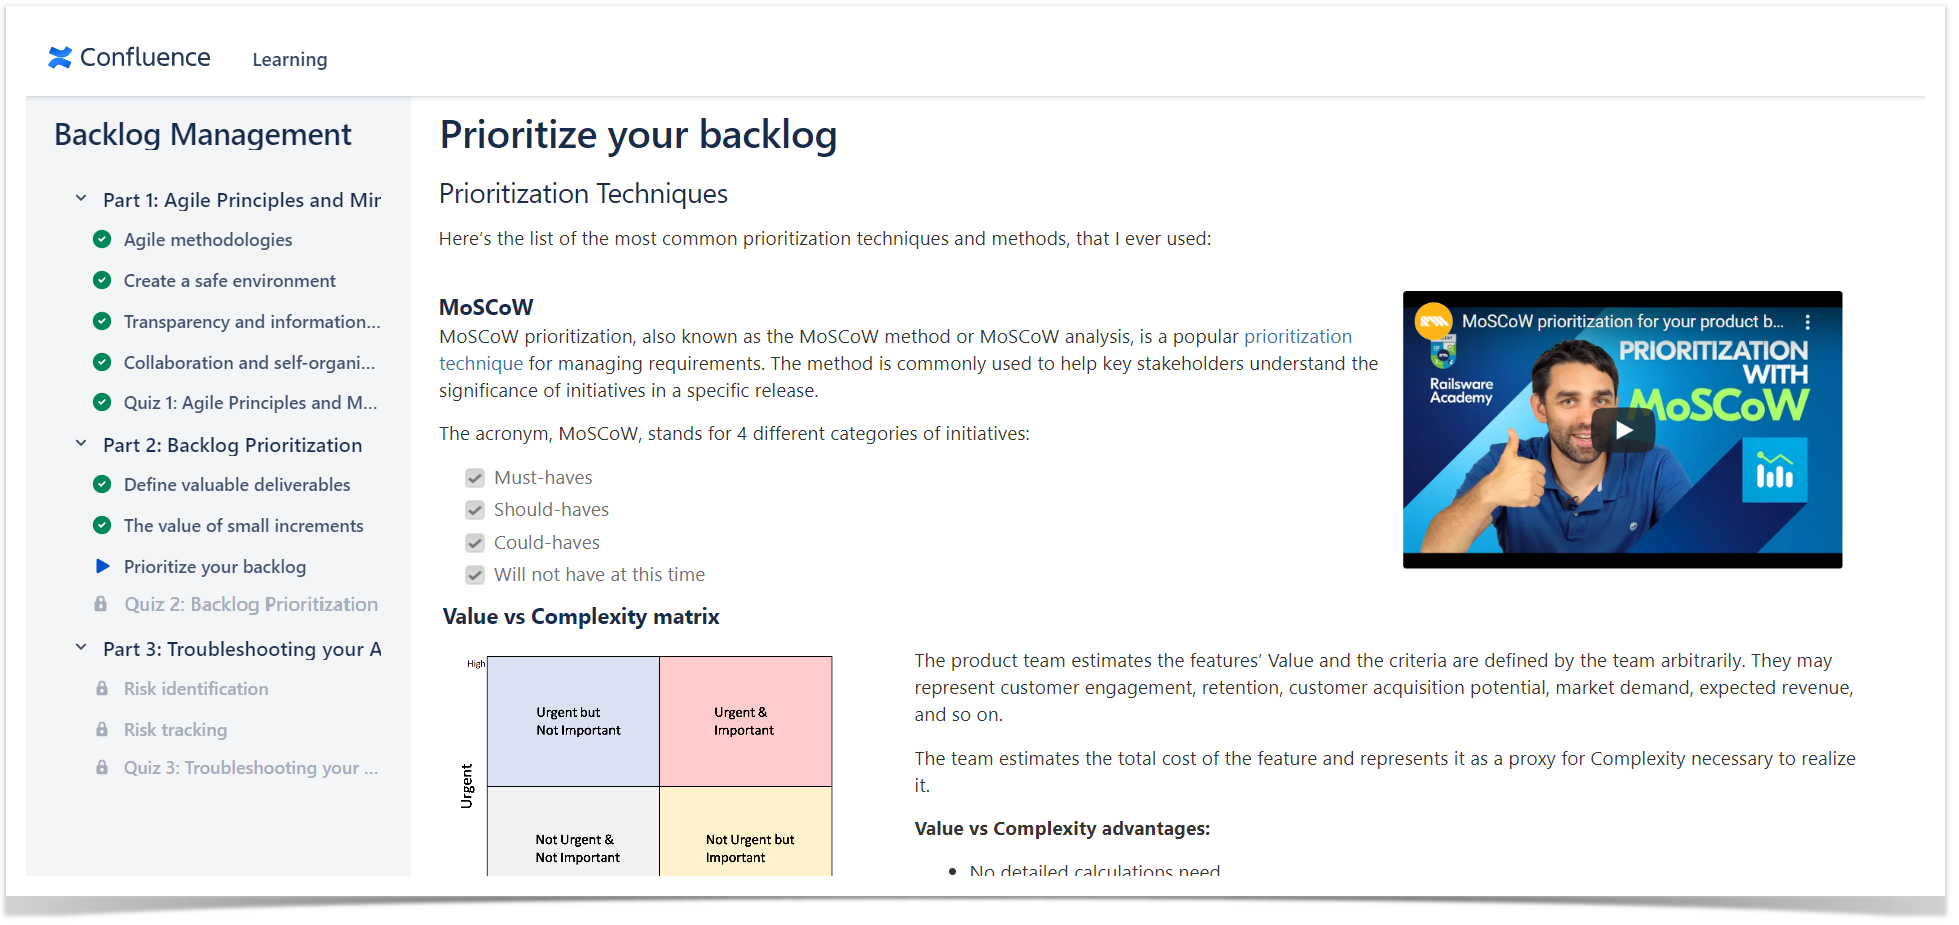 Engaging content in Confluence courses